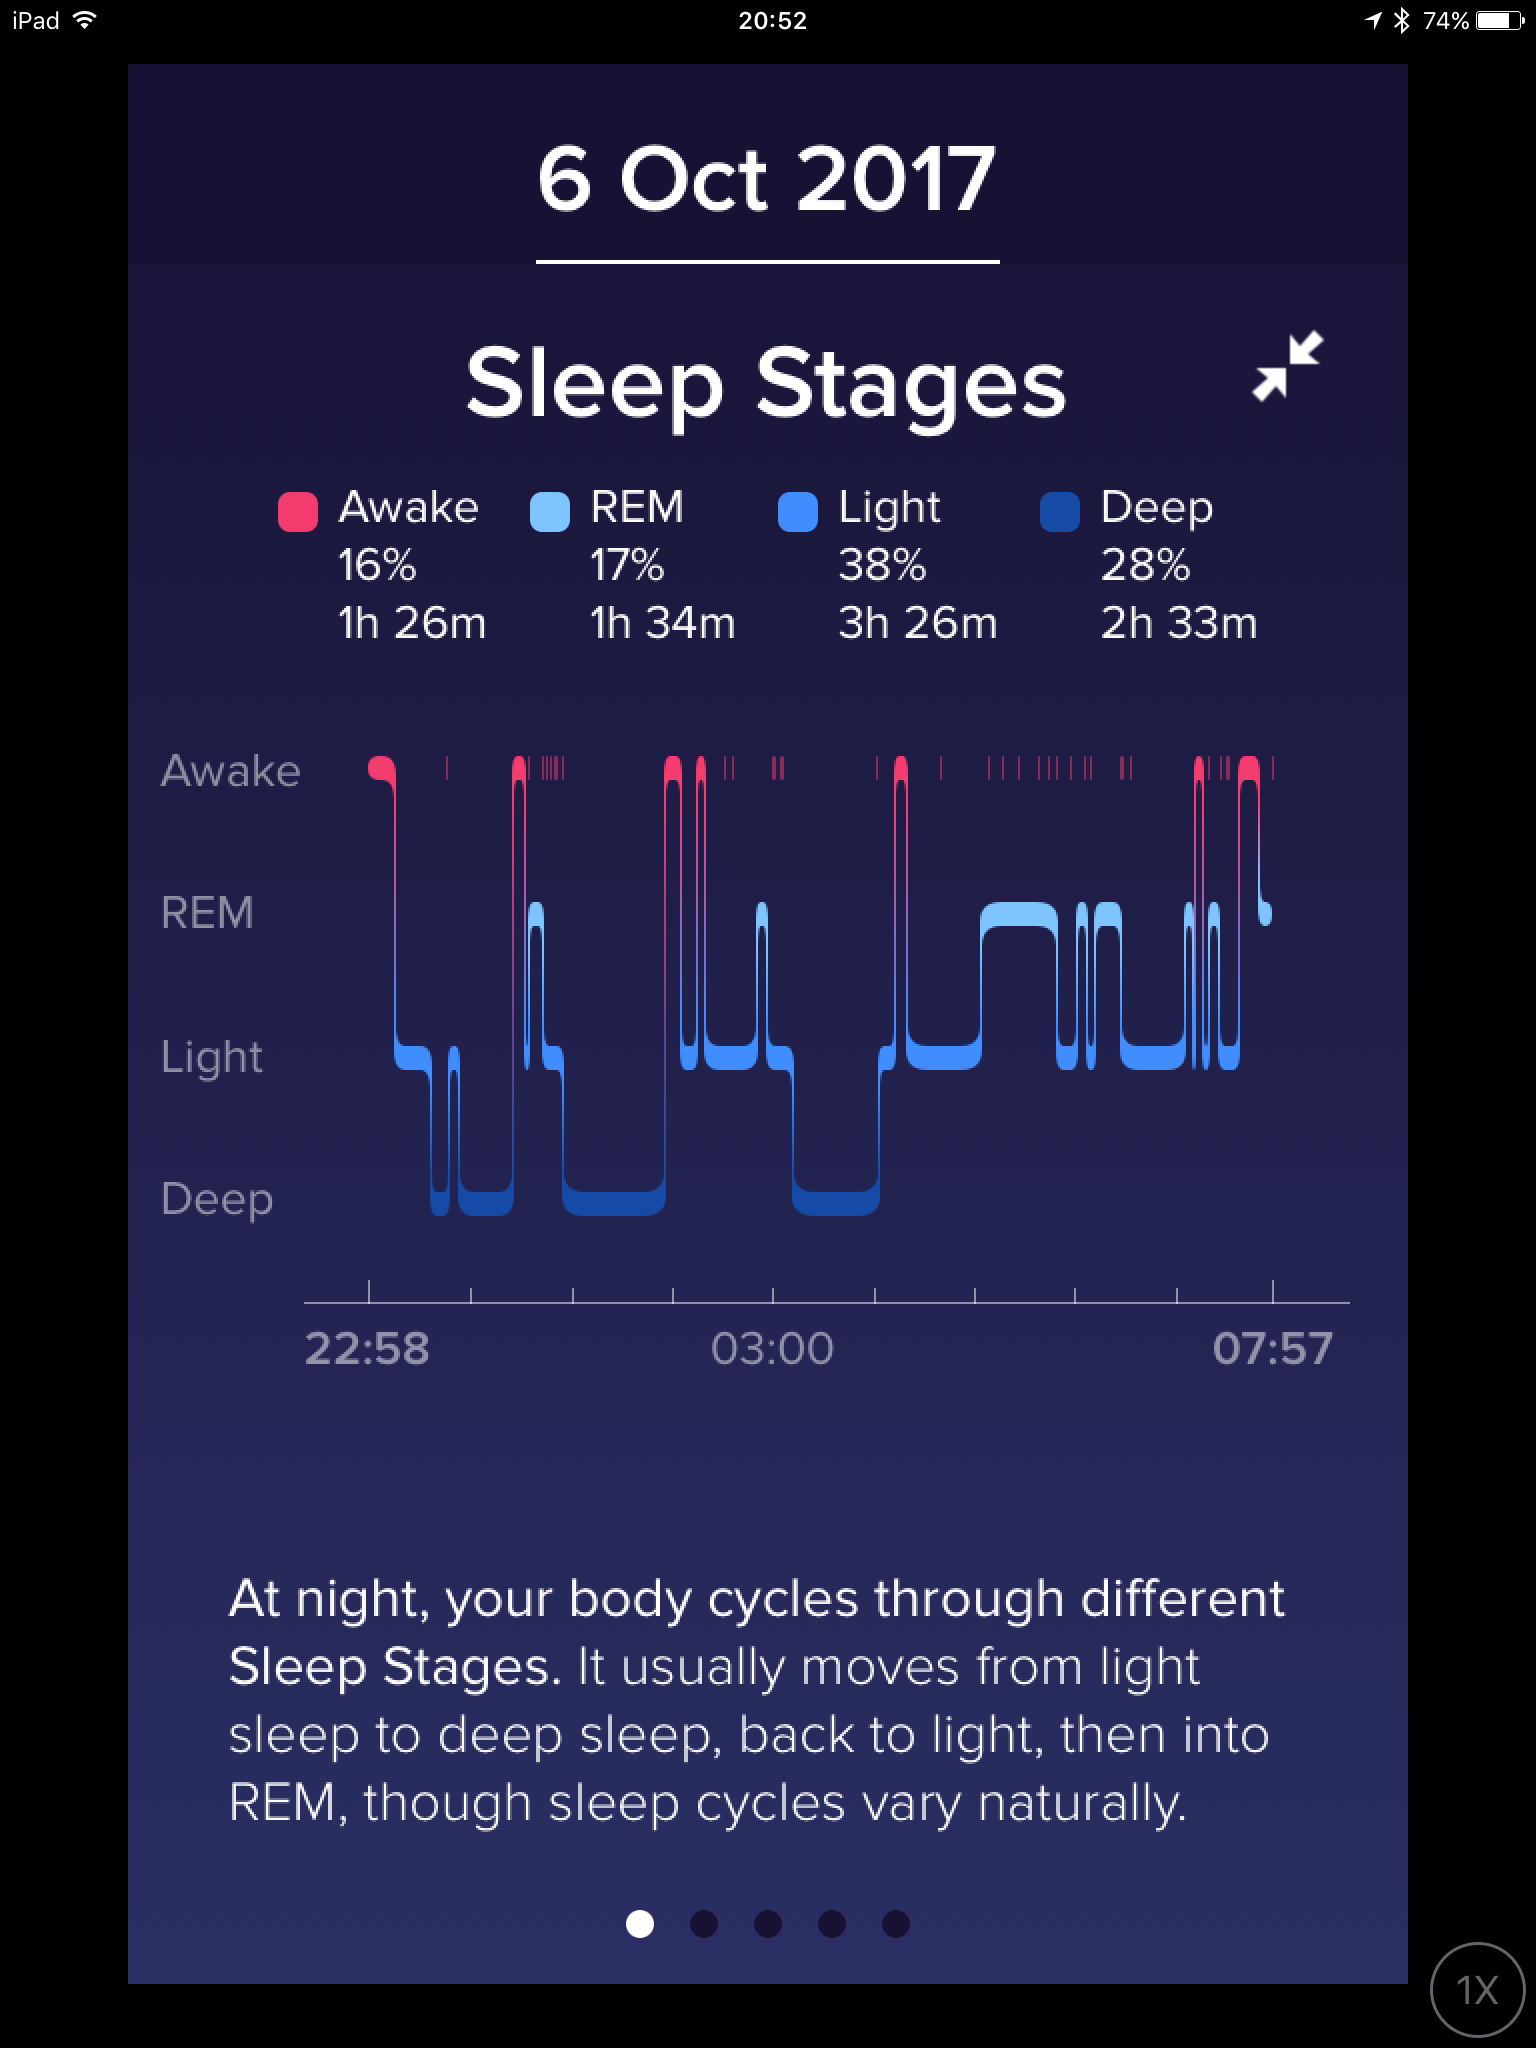 How many hours of deep sleep do you need at night